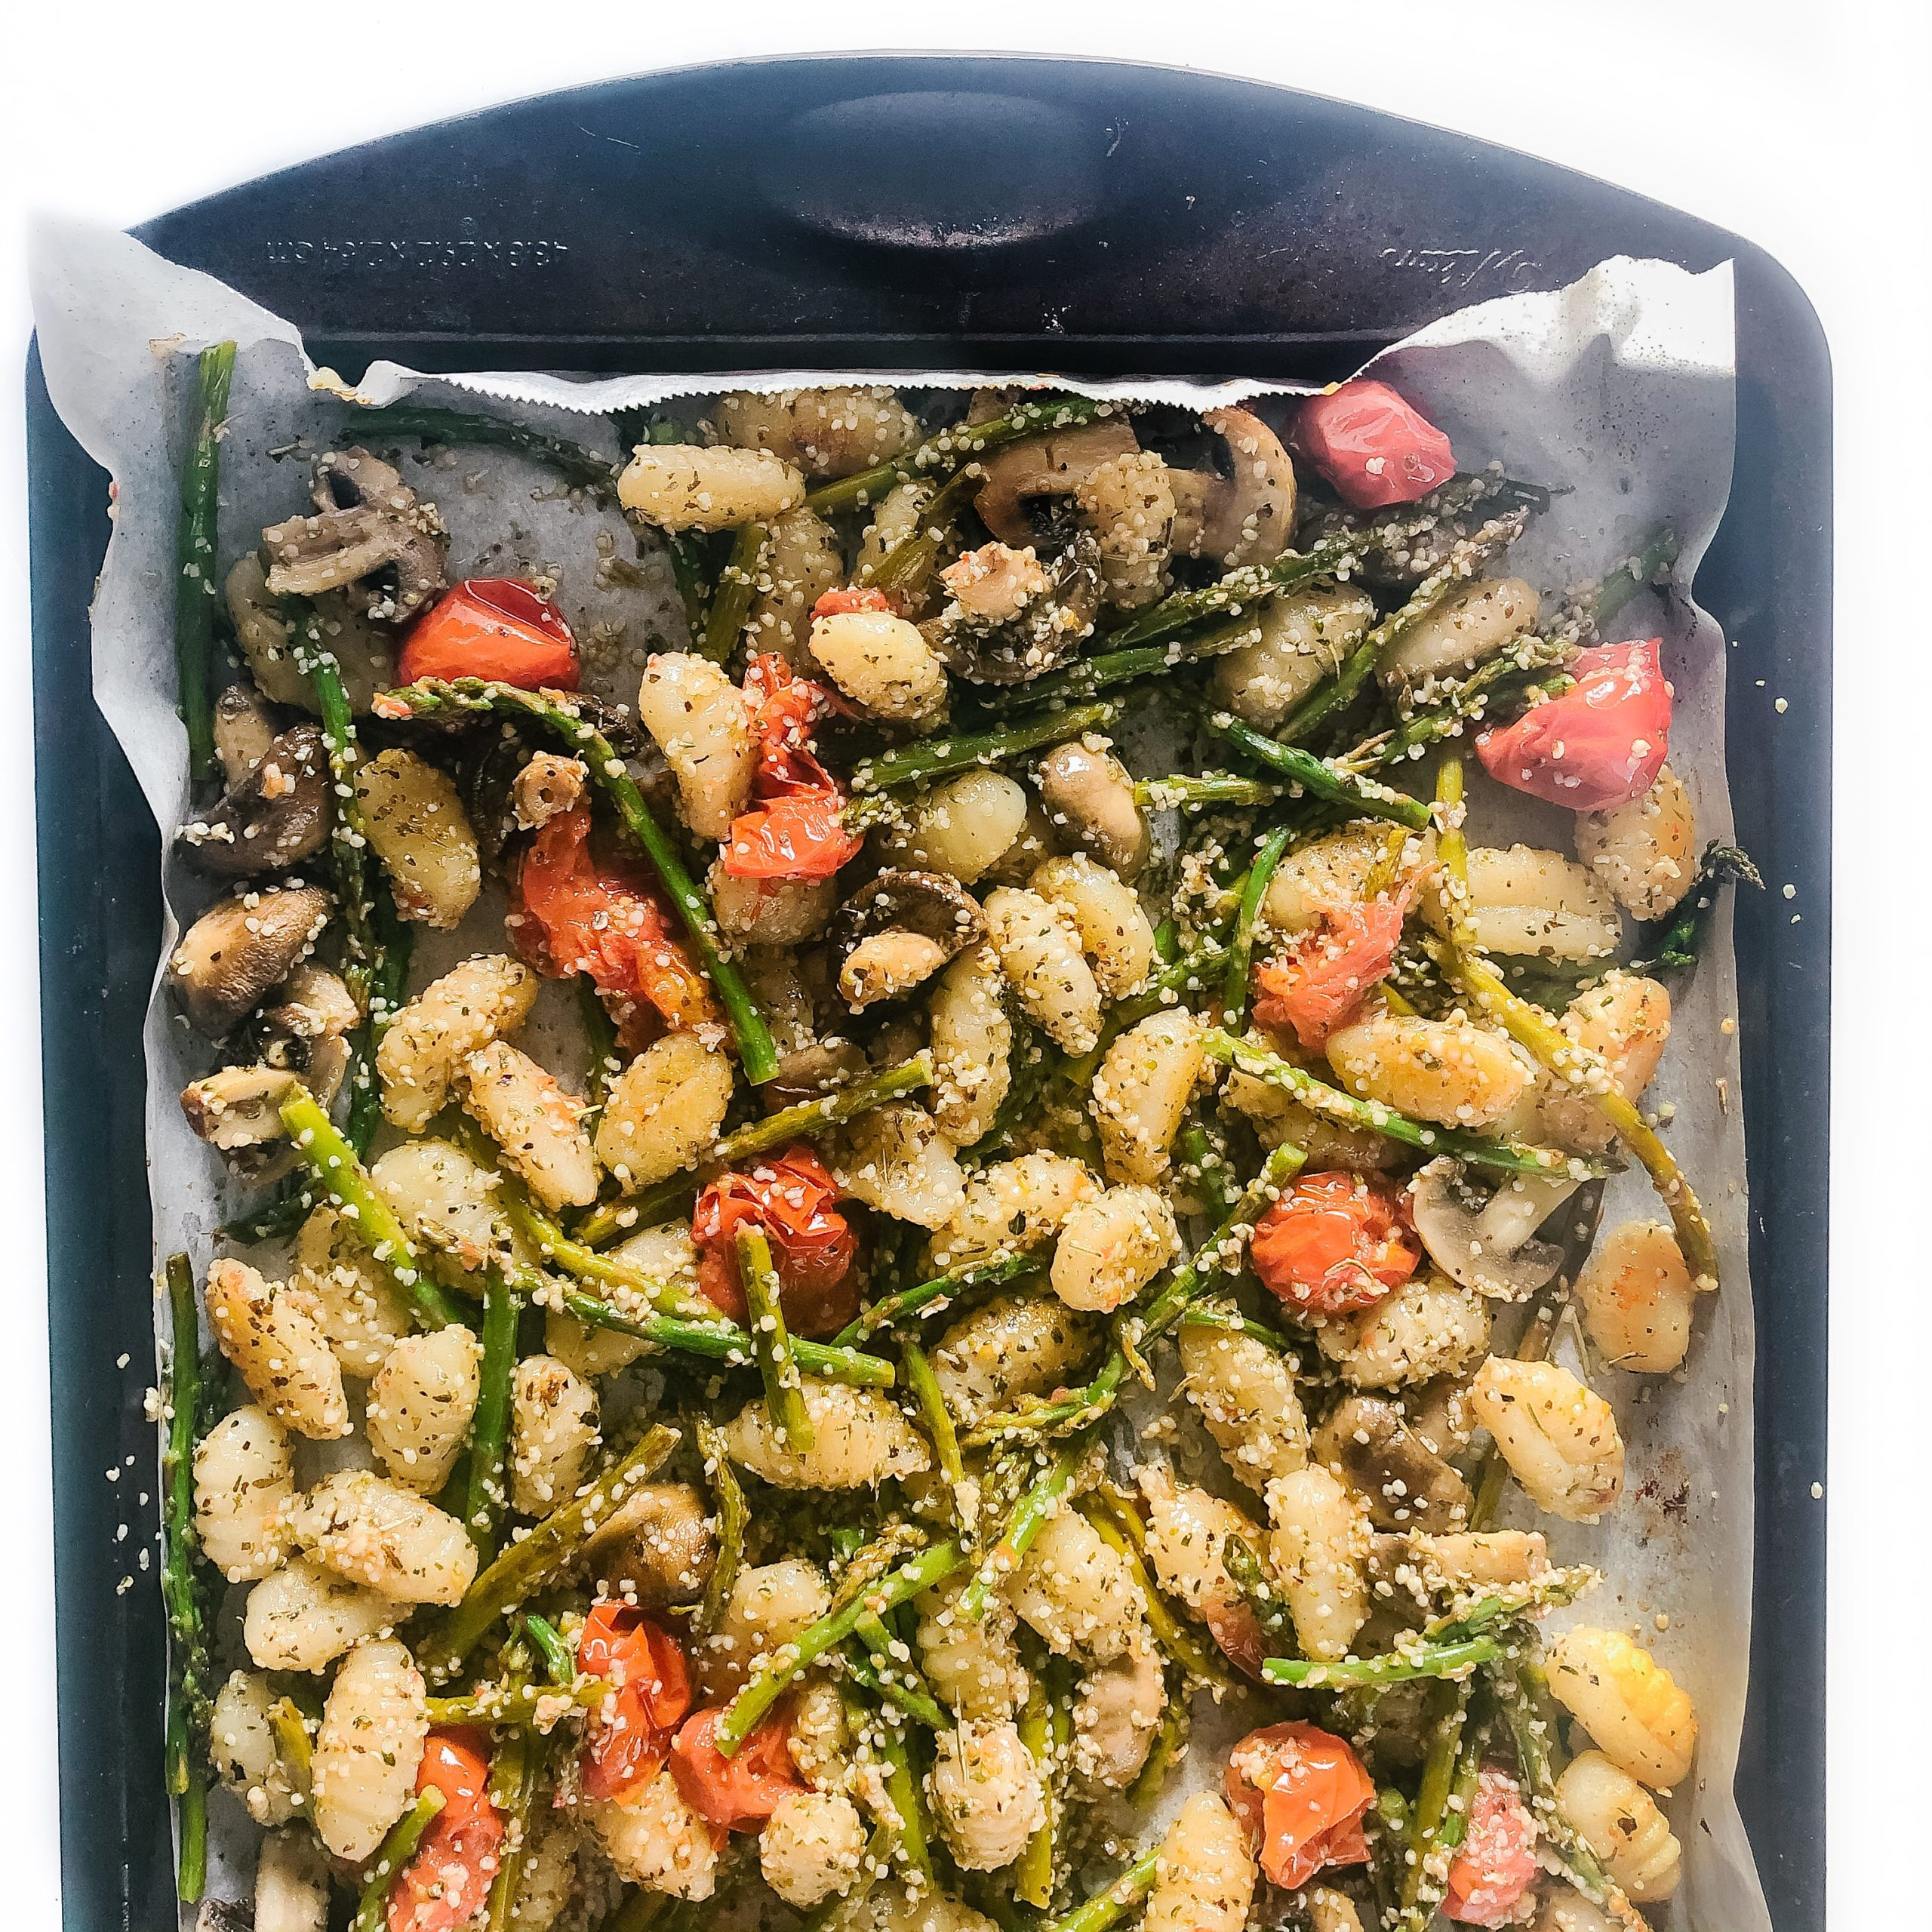 Easy Sheet Pan Roasted Vegetable Gnocchi with Hemp Seeds